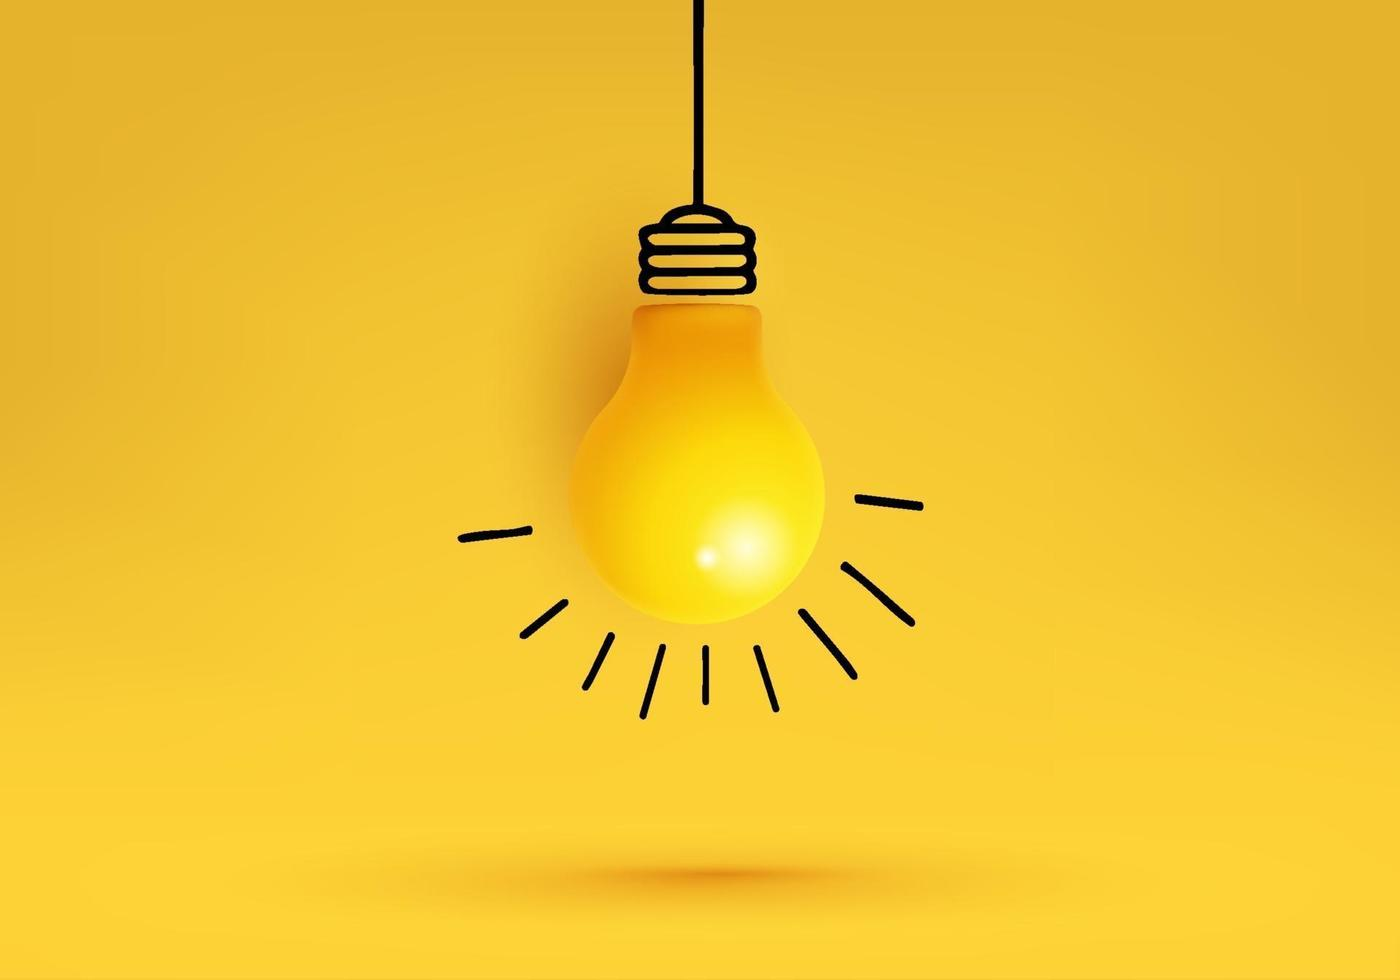 Creative idea, Inspiration, New idea and Innovation concept vector with light bulb on Yellow background.